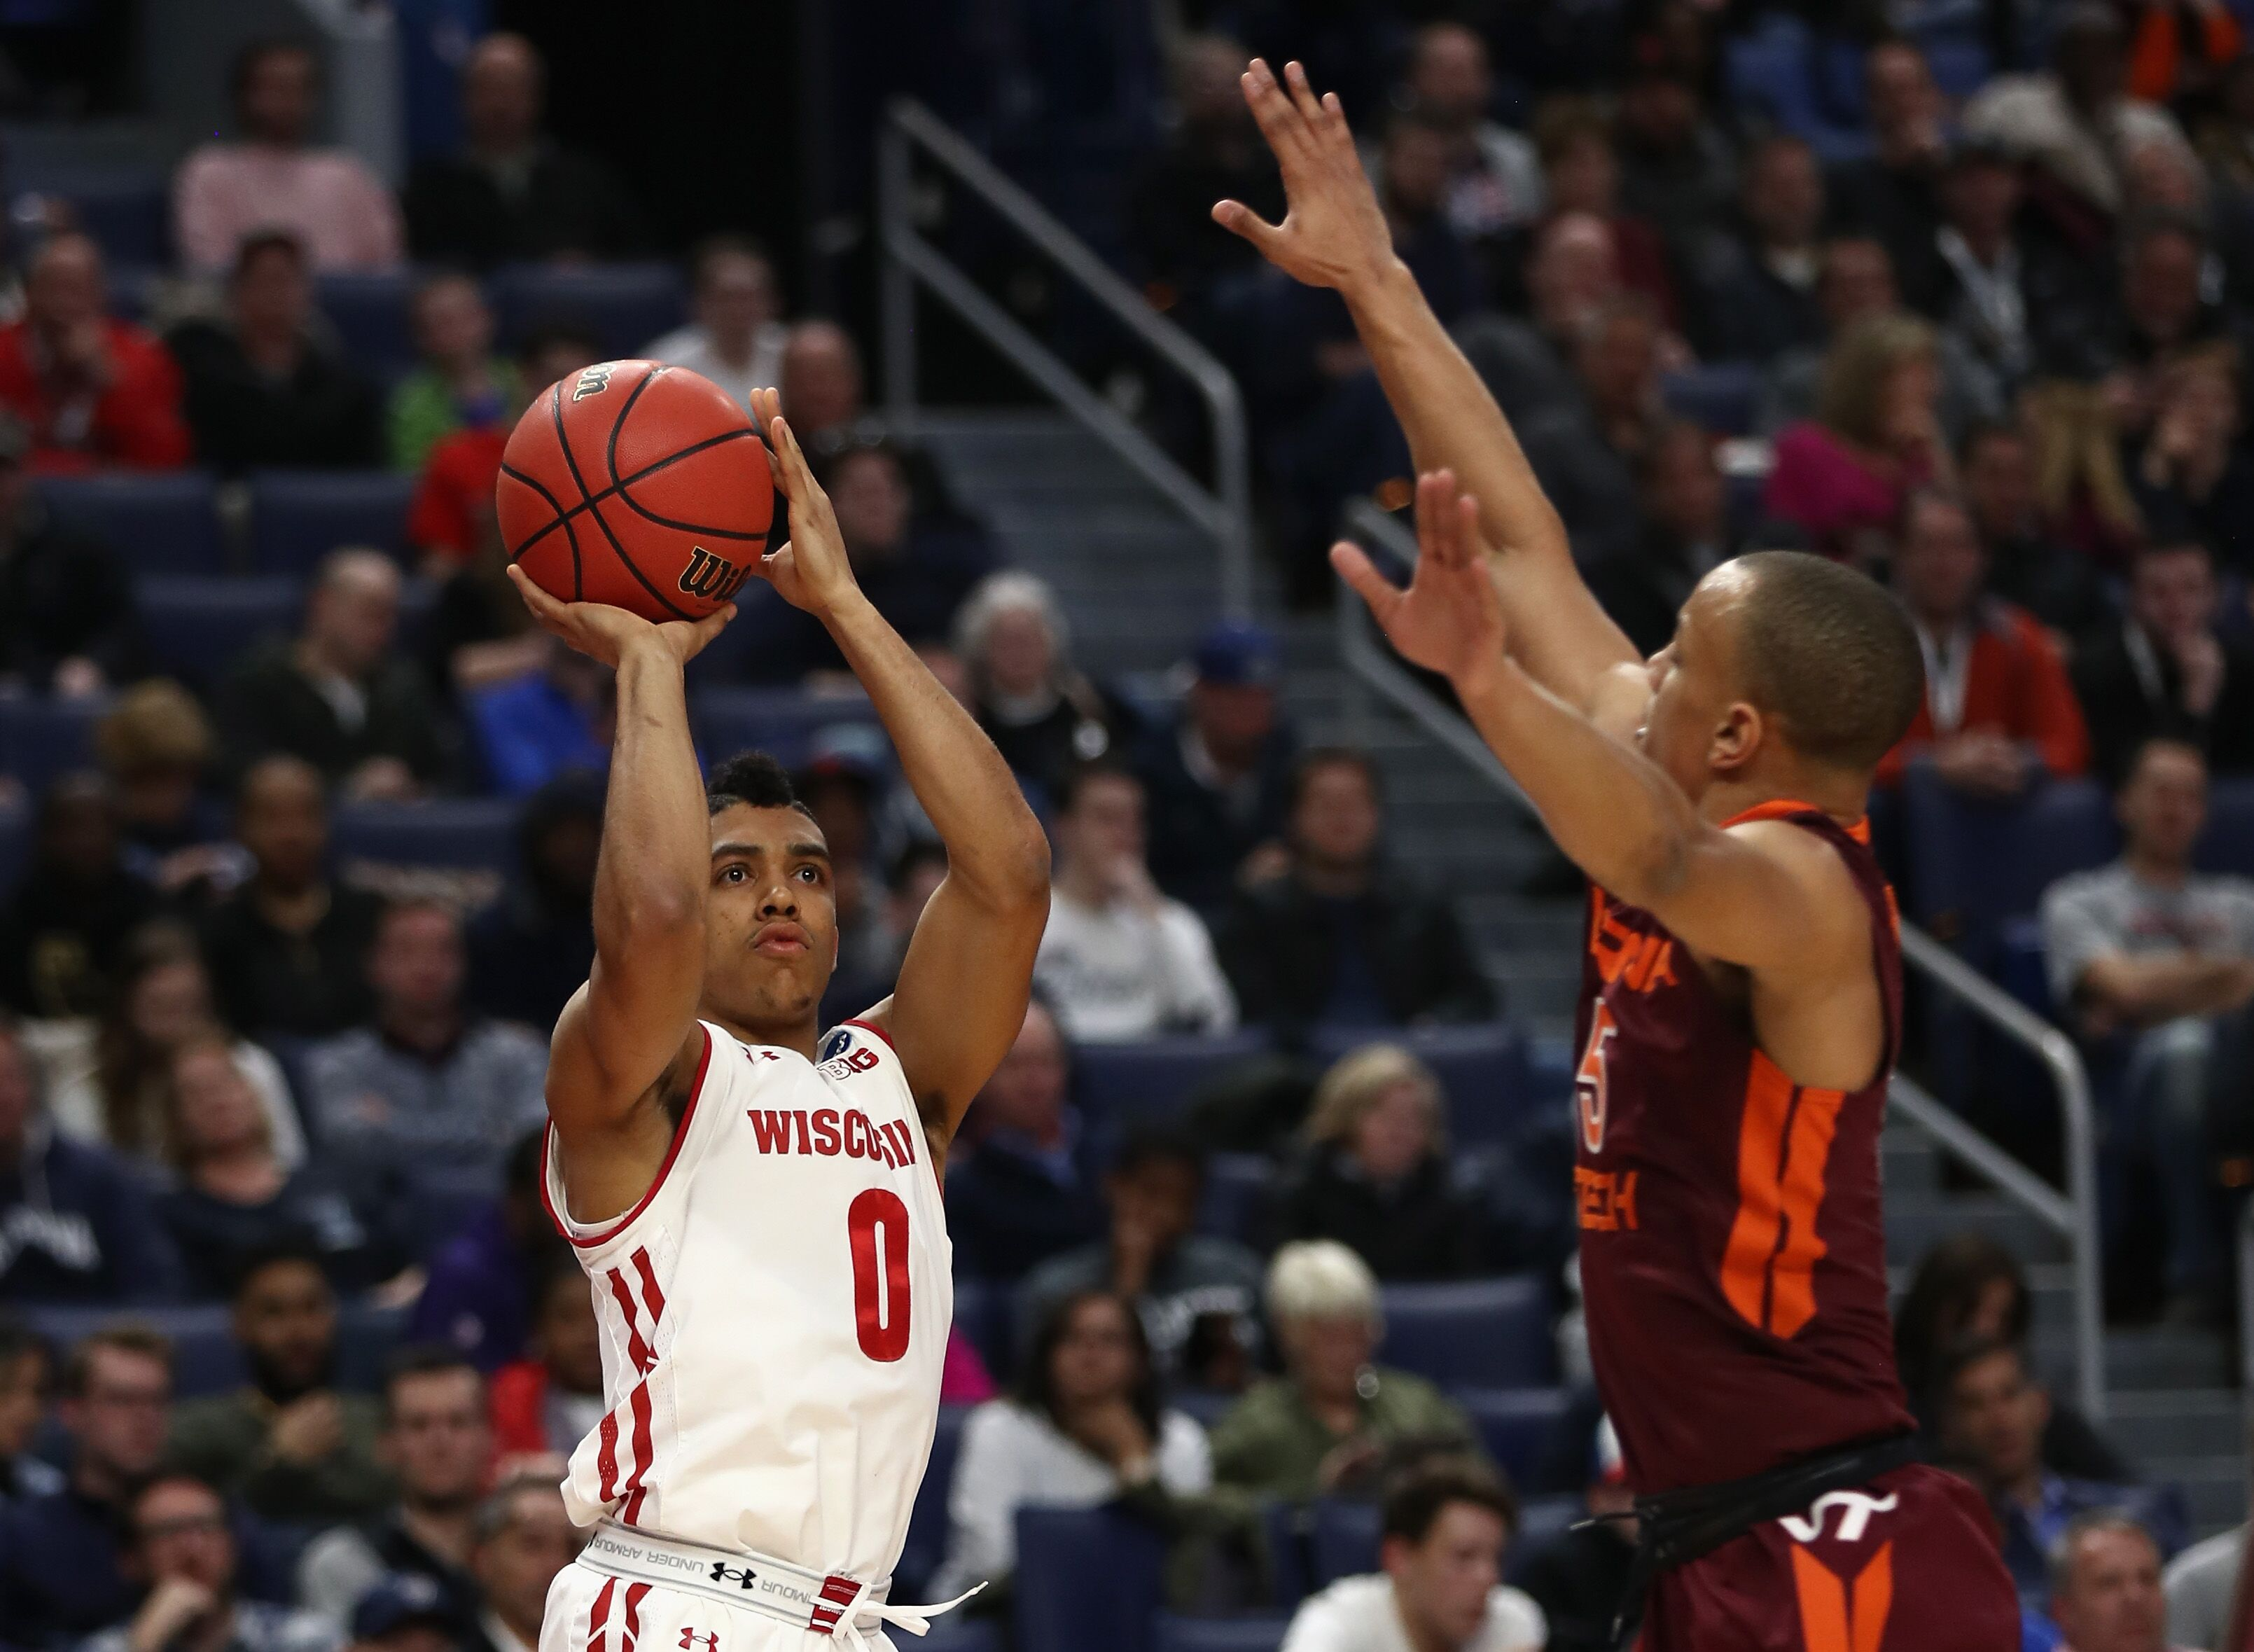 654256960-ncaa-basketball-tournament-first-round-virginia-tech-v-wisconsin.jpg